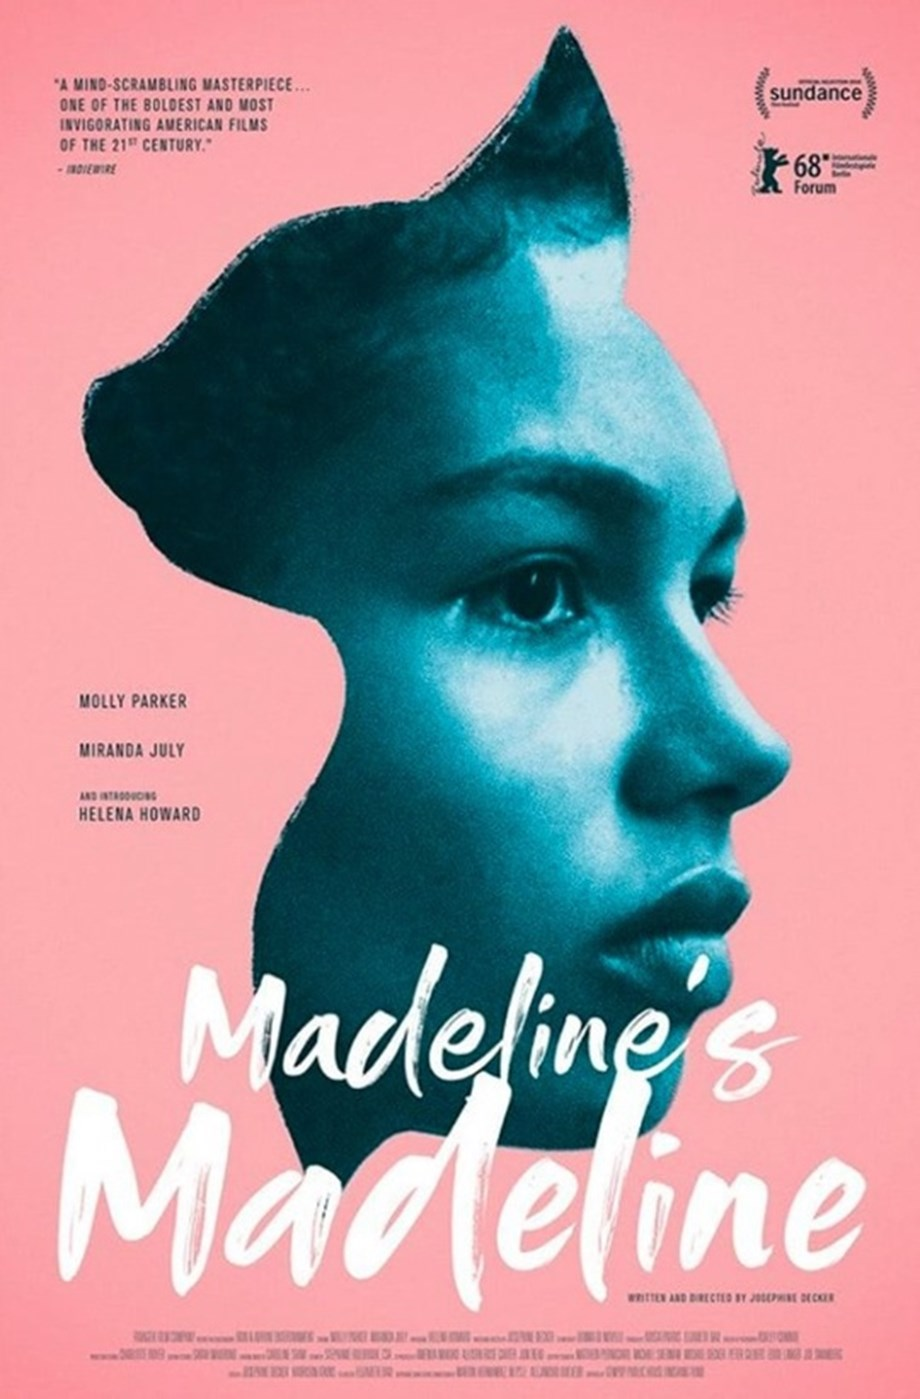 What's the matter with Madeline, Film Review: 'Madeline's Madeline'